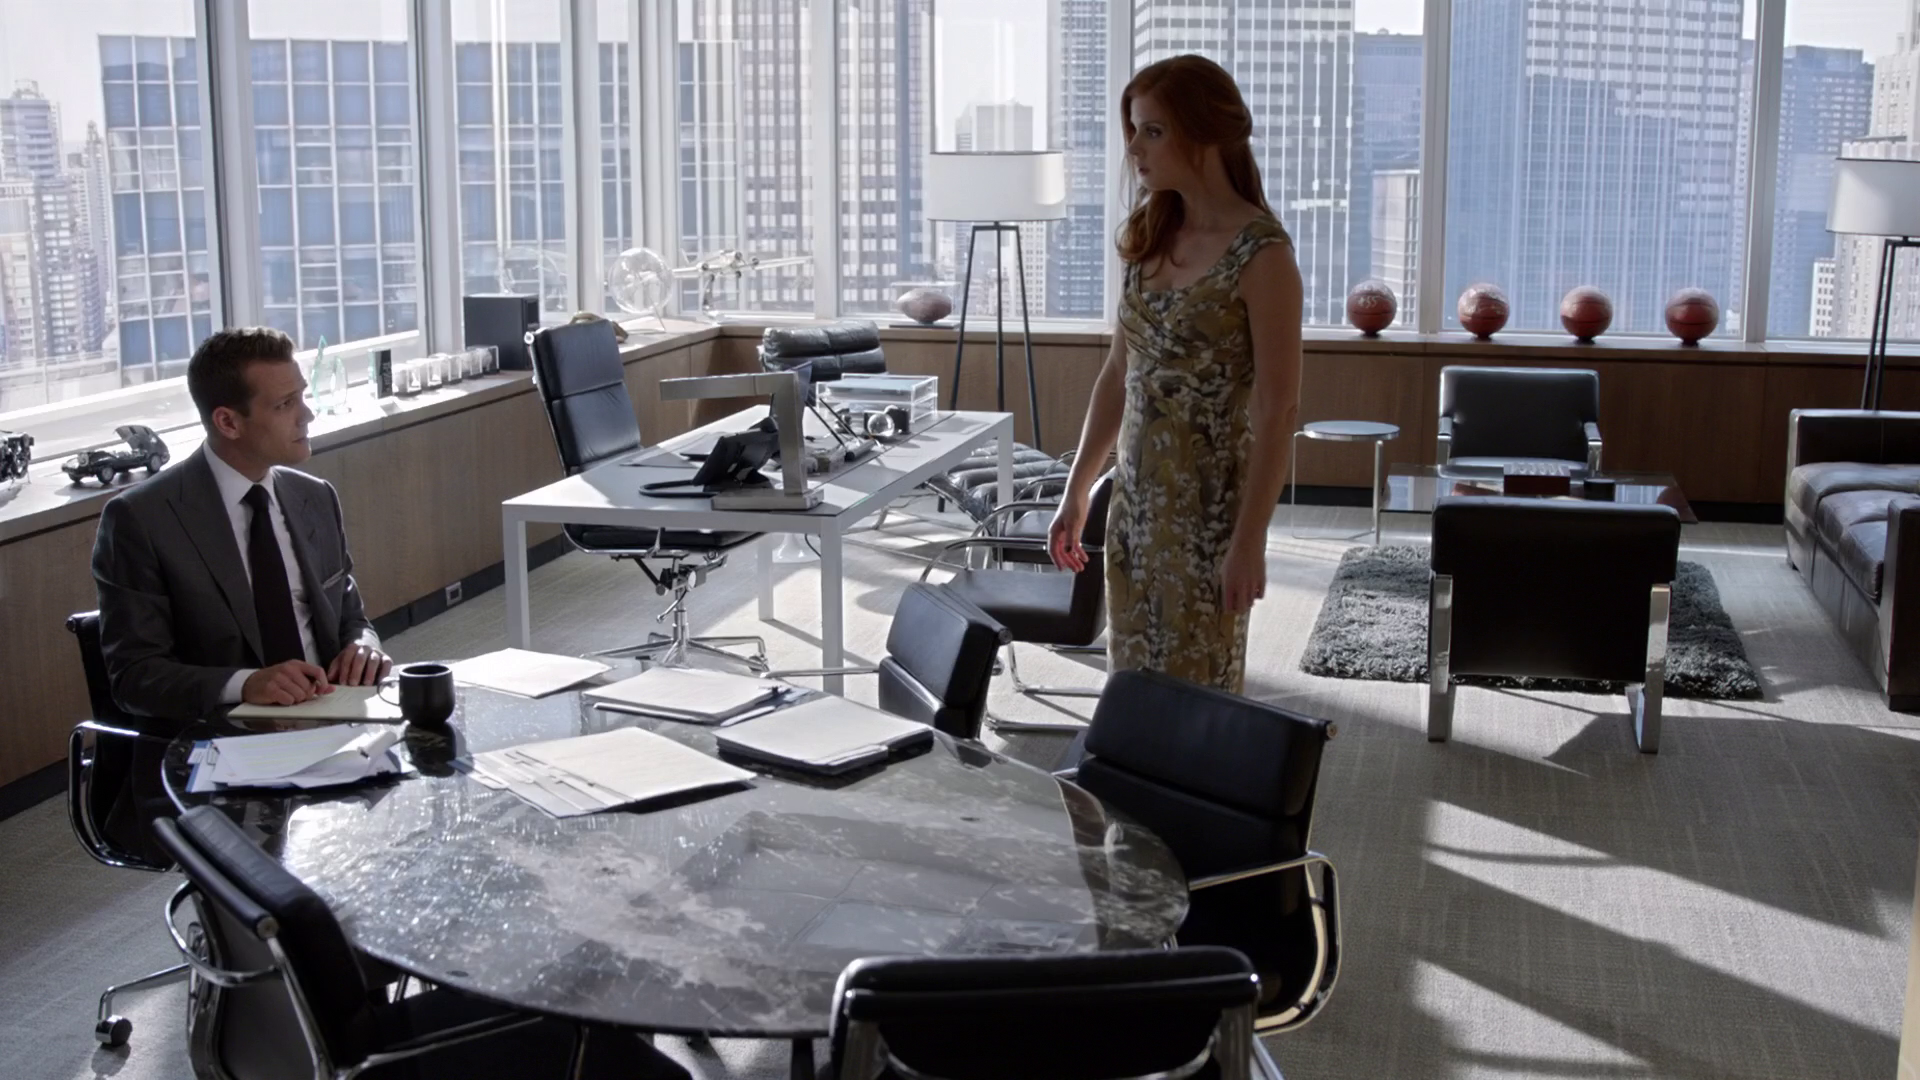 suits office. Wonderful Office Harveyu0027s Office 3x11png On Suits Y